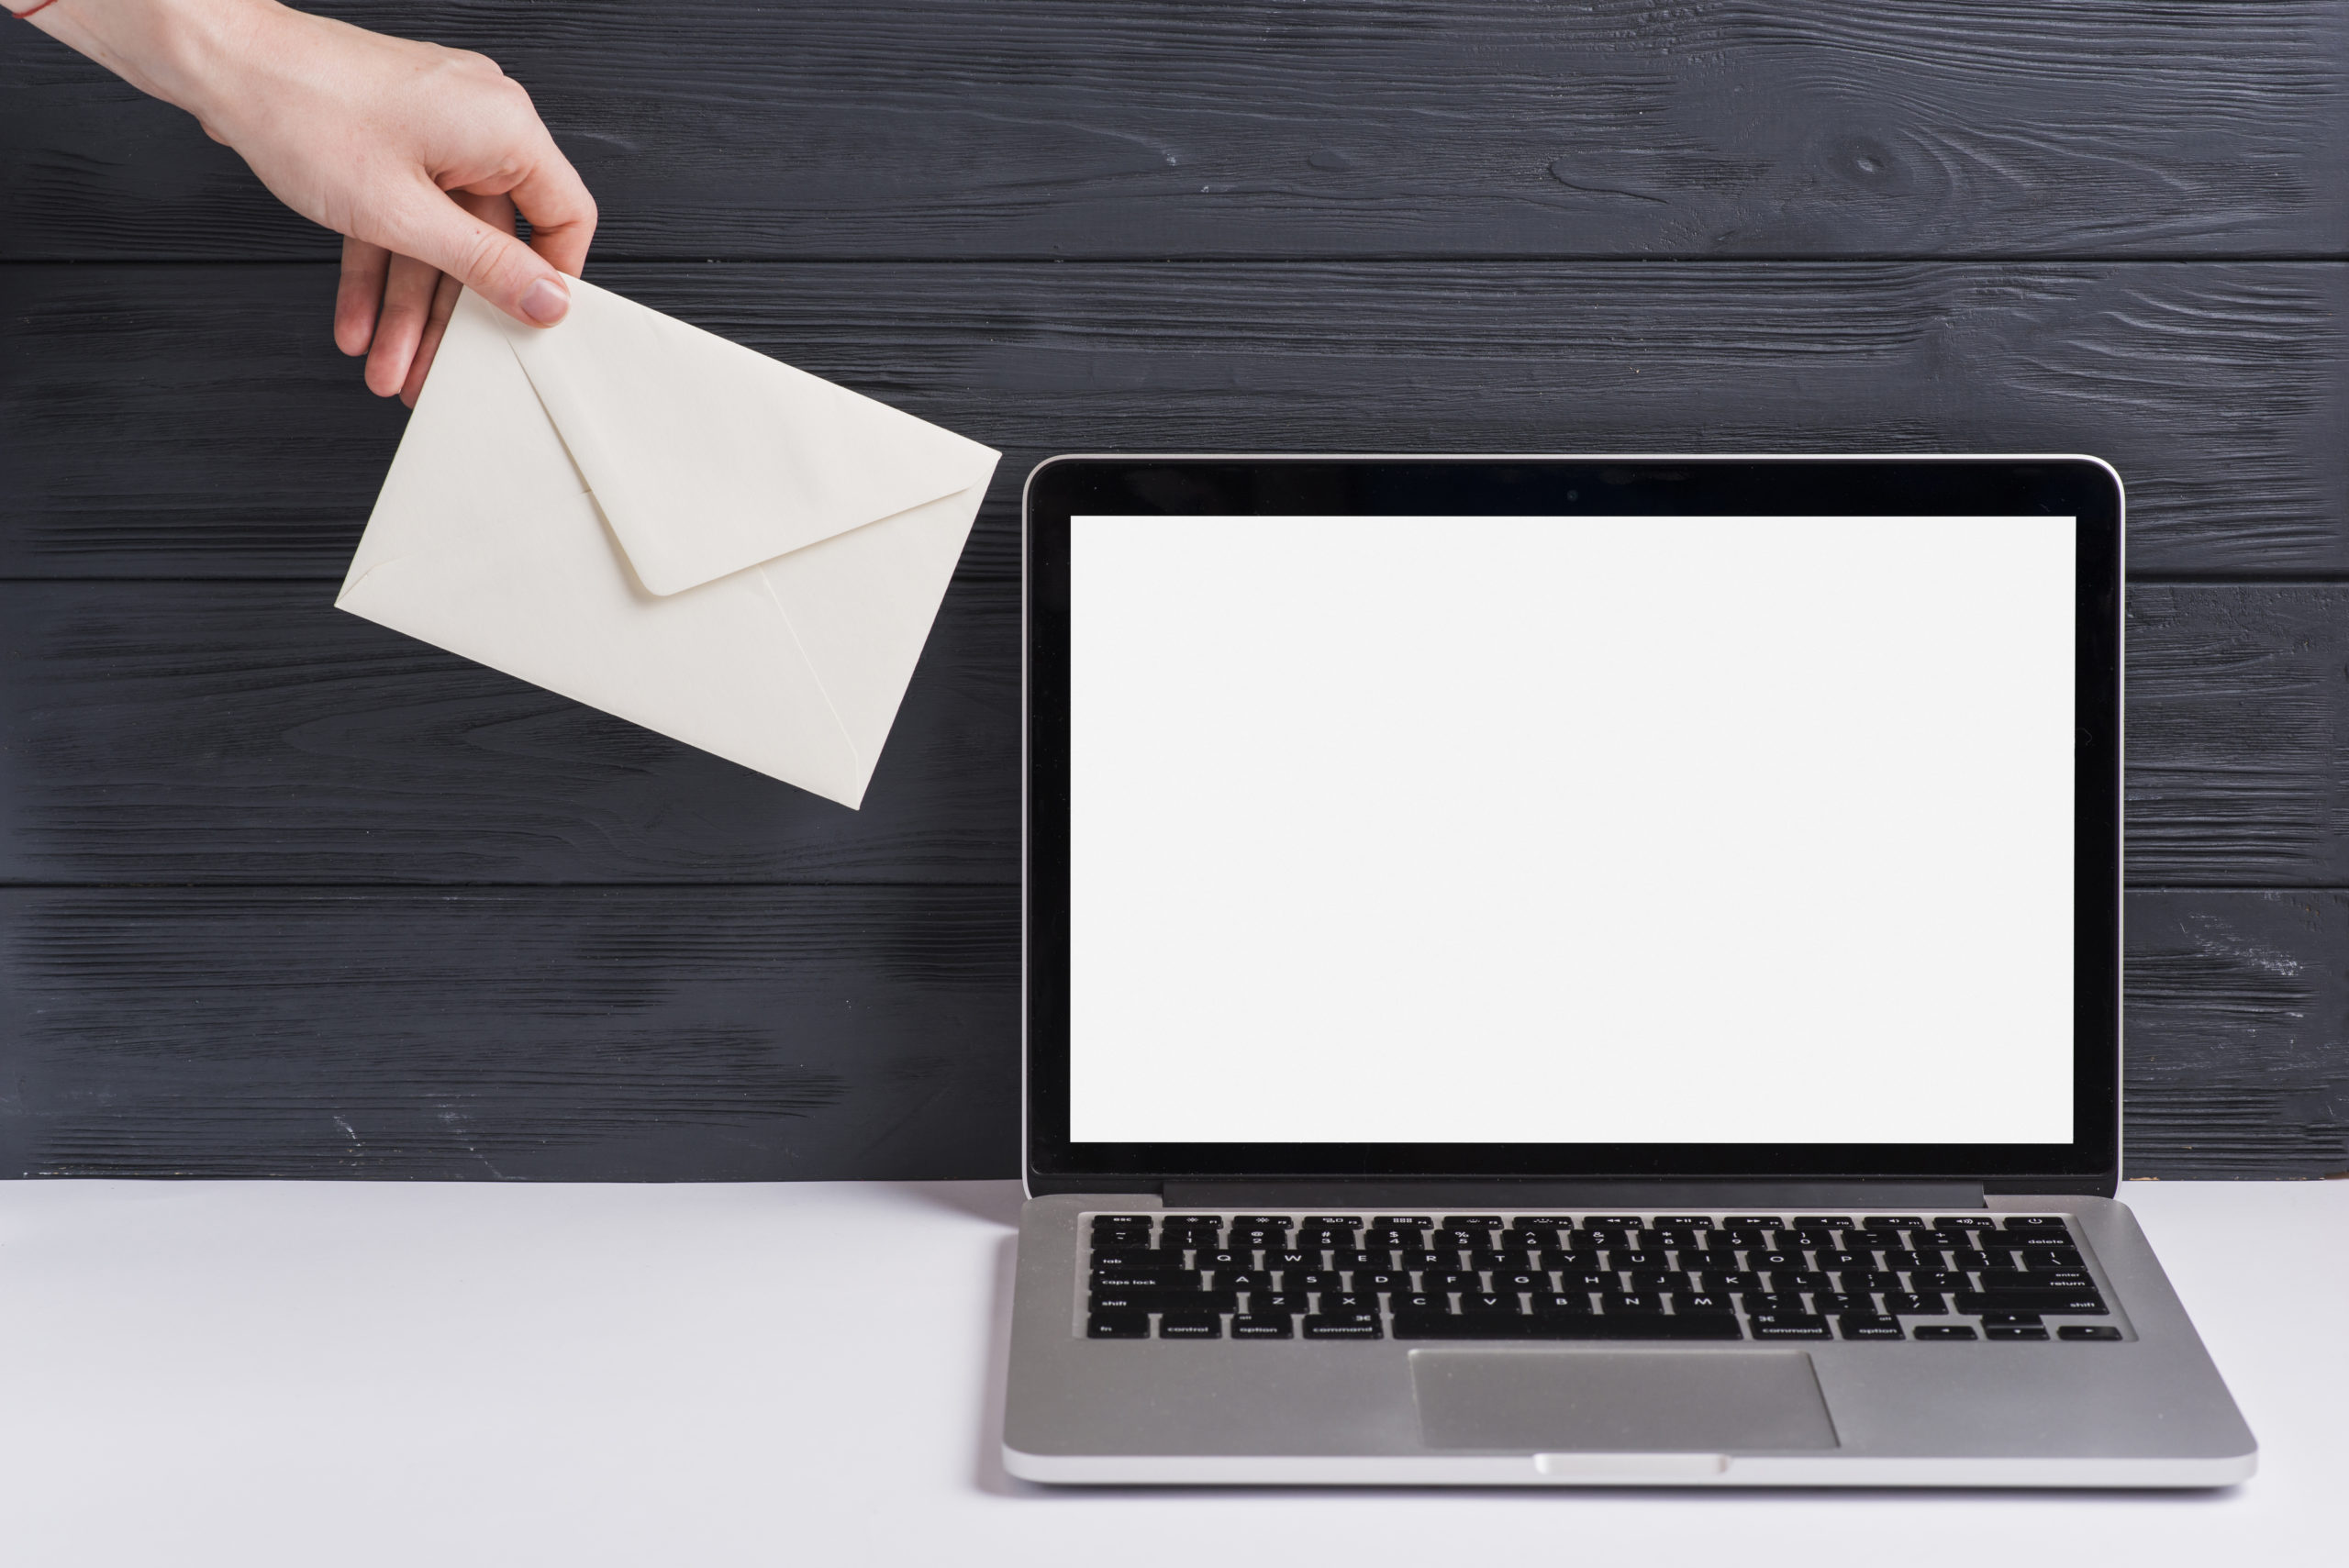 6 Reasons Why Your Marketing Emails Might Not Be Converting